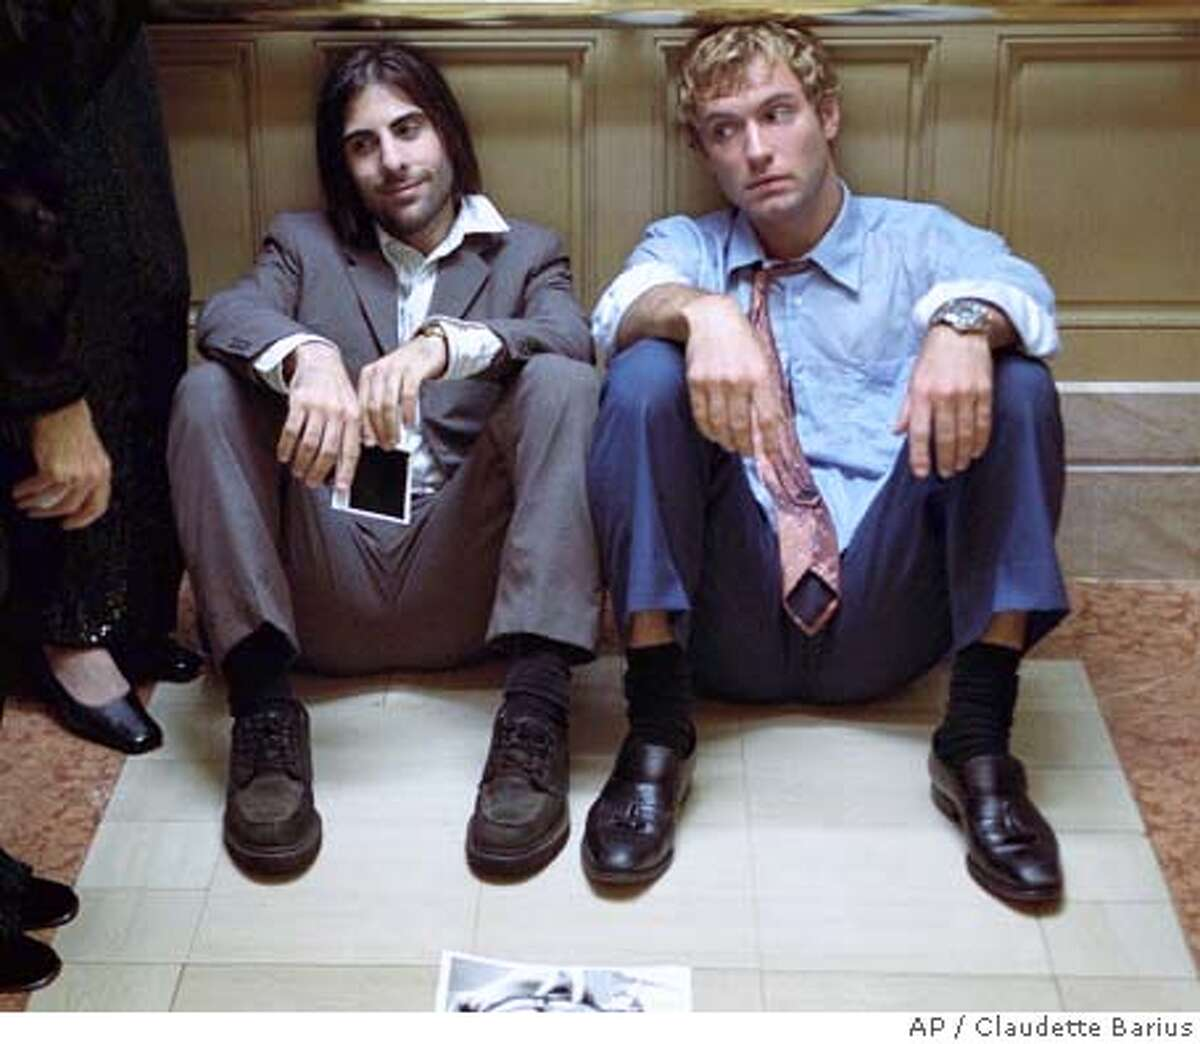 (Left to right) Albert Markovski (Jason Schwartzman) examines his life, his relationships, and his conflict with Brad Stand (Jude Law), an executive climbing the corporate ladder at Huckabees department store in